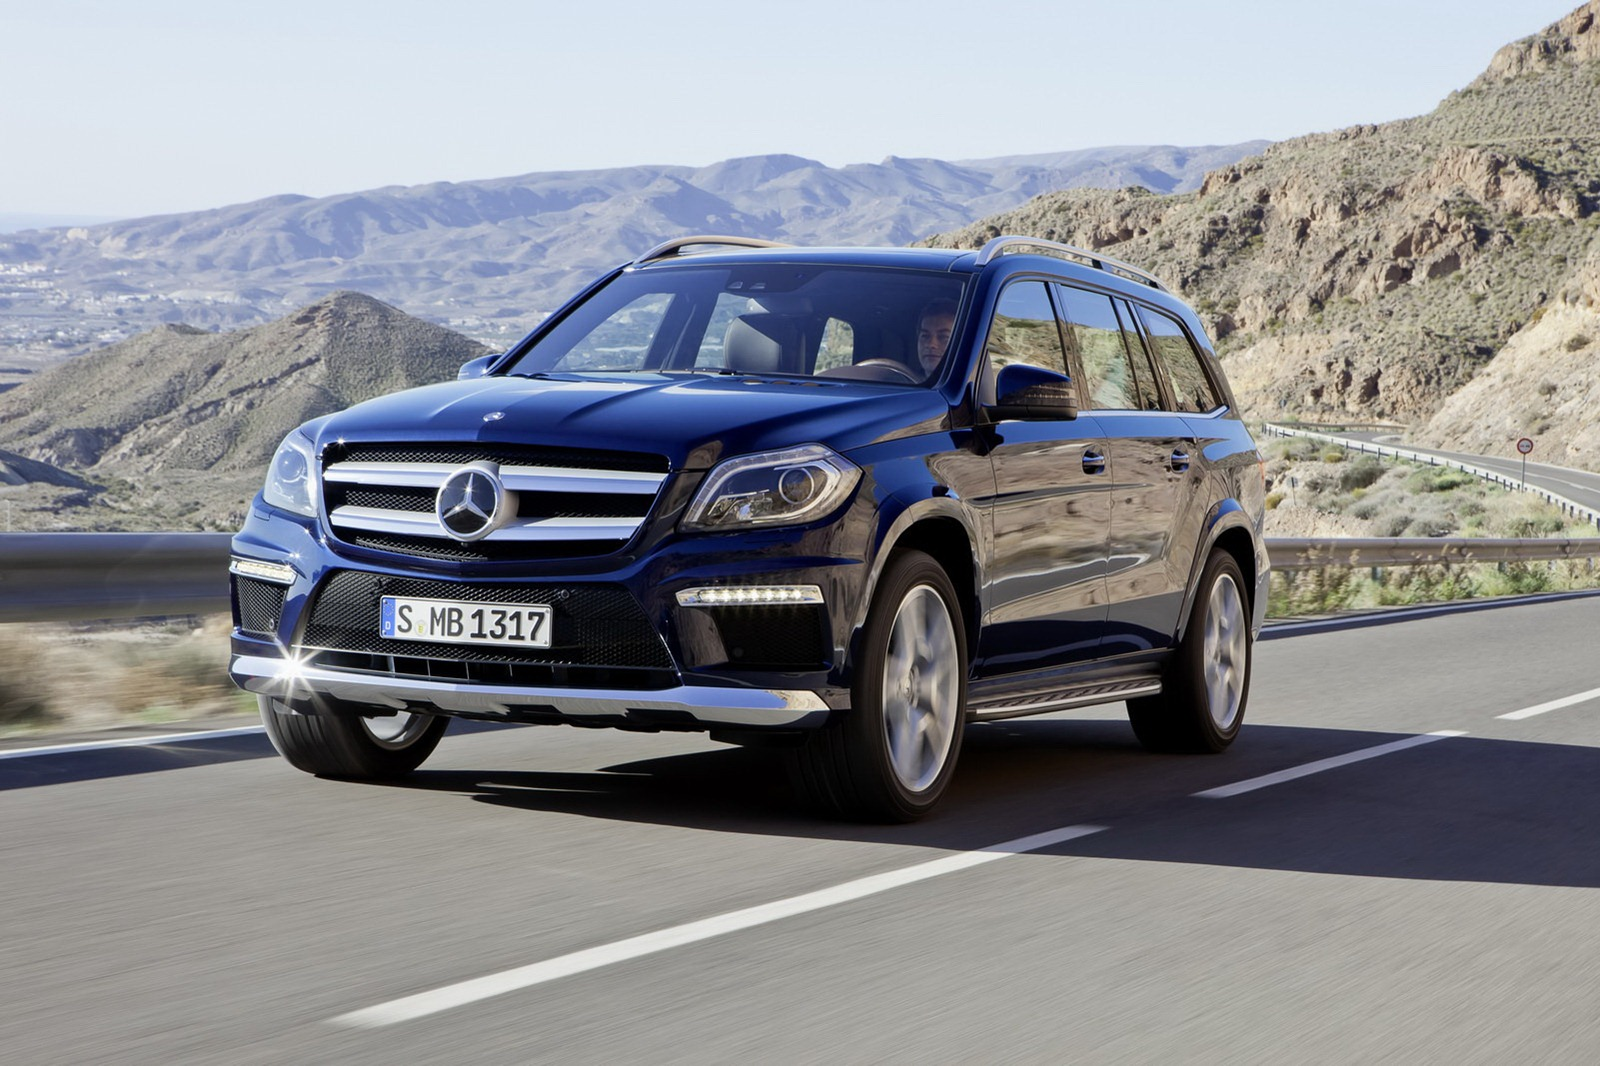 2013 mercedes benz gl class luxury suv unveiled for Gl class mercedes benz